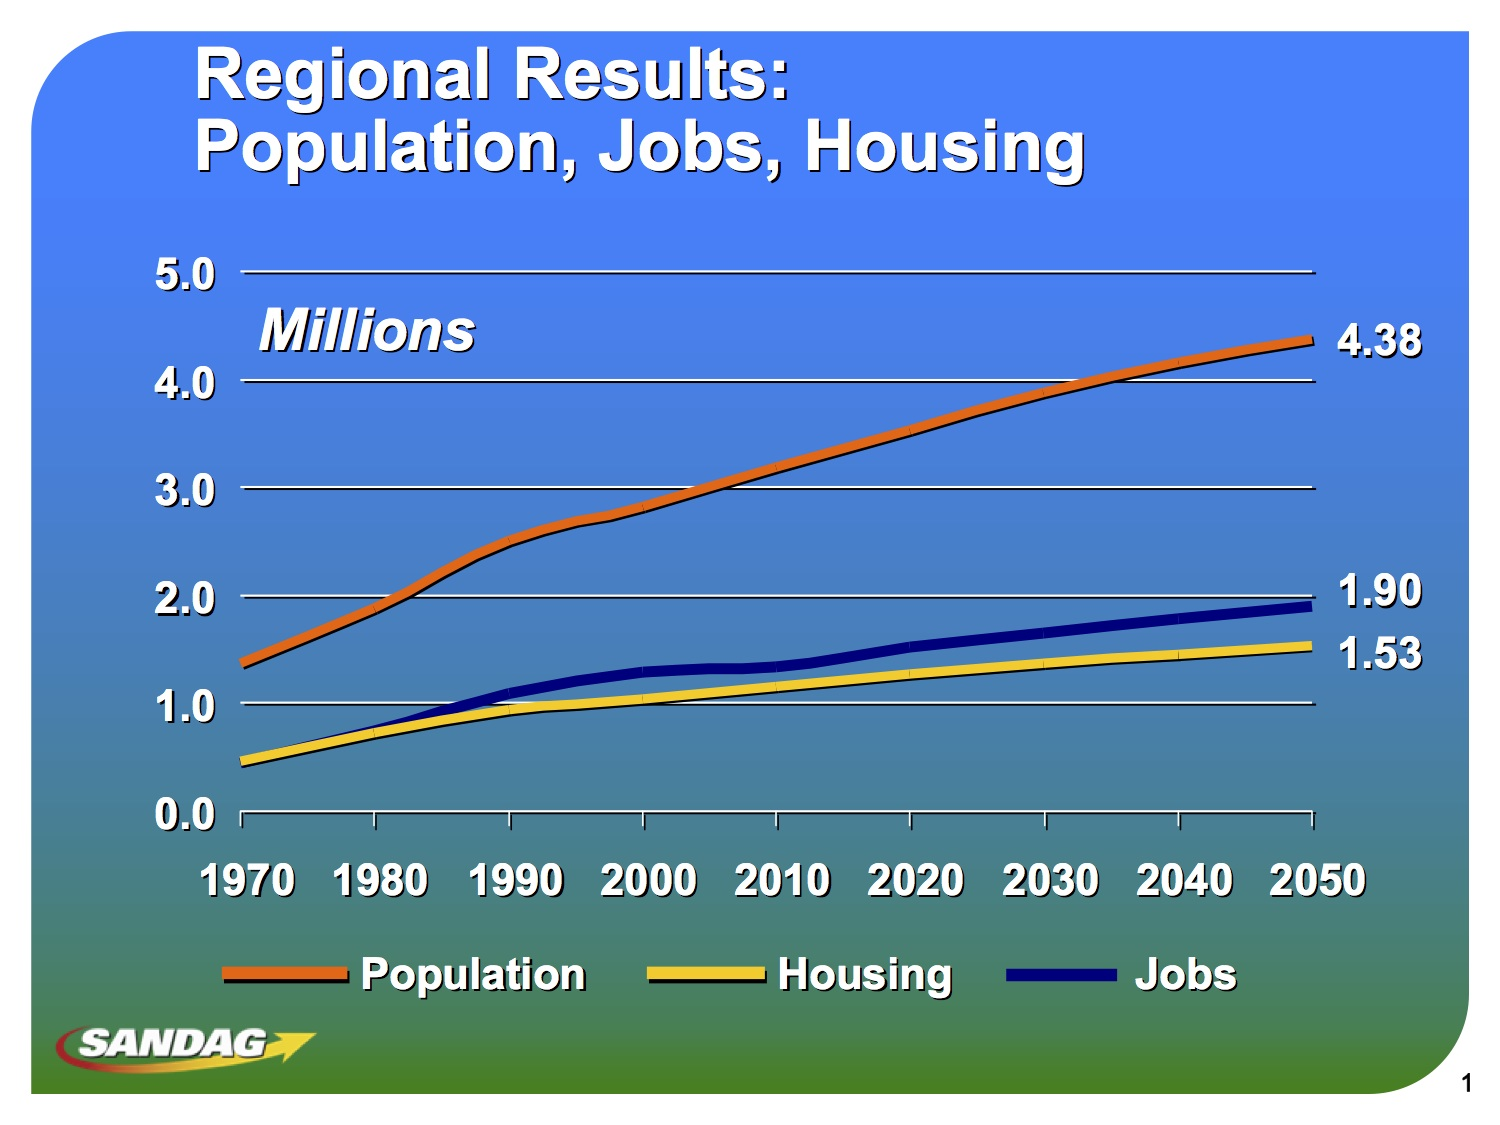 Regional Results: Population, Jobs, Housing